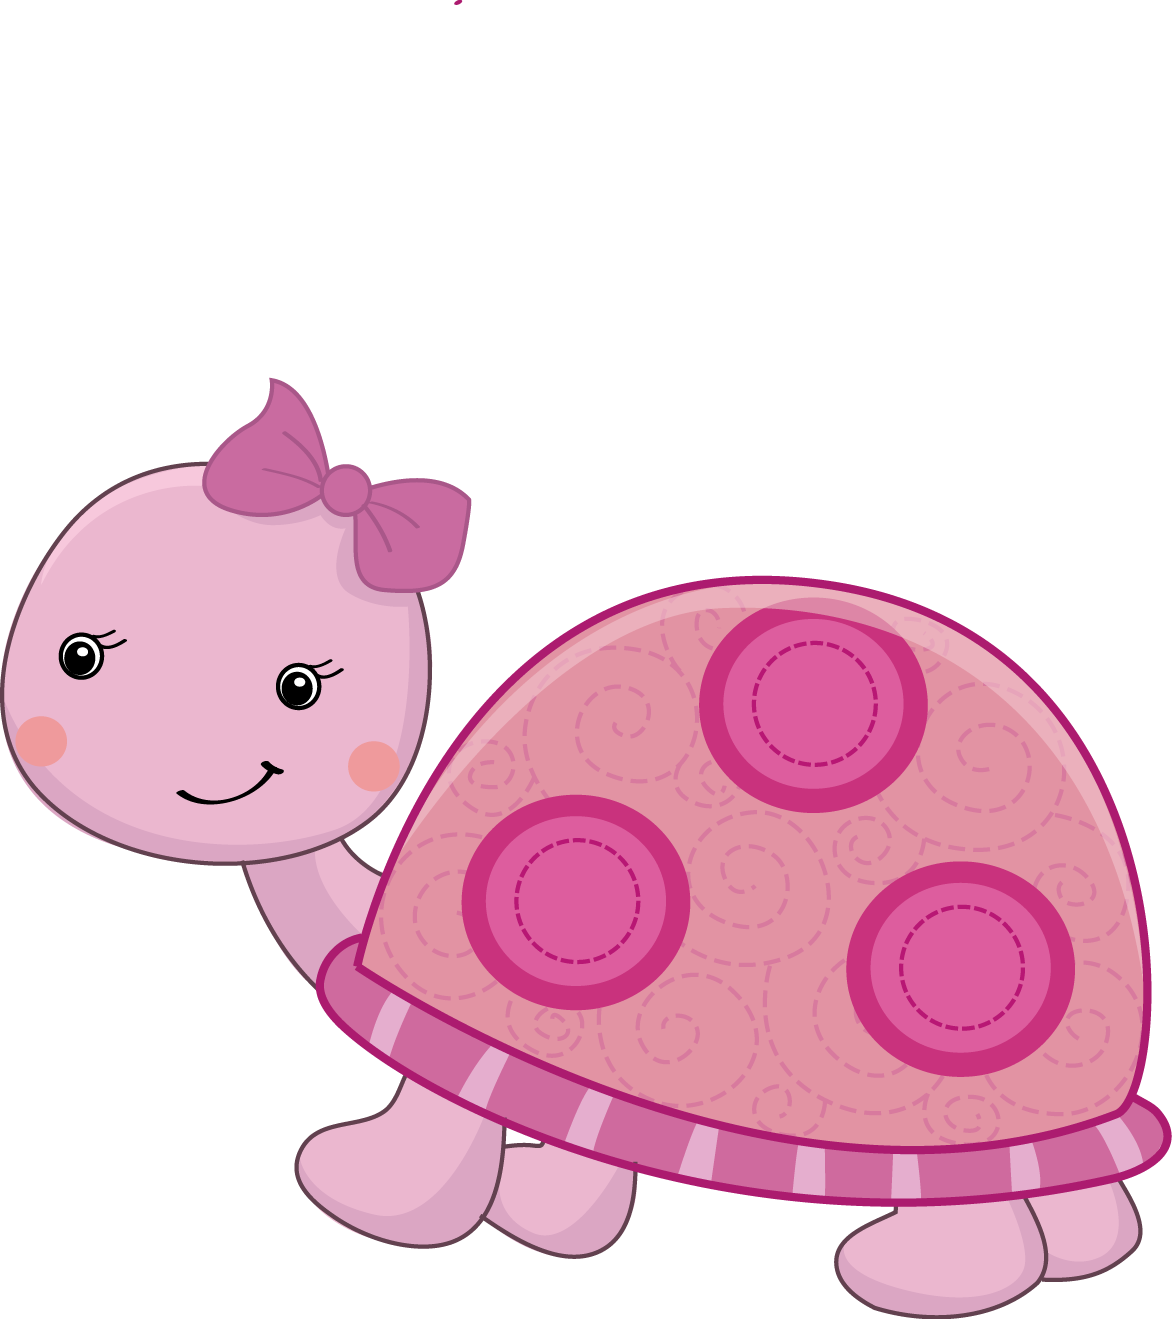 Pretty Pink Girly Jungle Animals 05 Png Baby Animal Nursery Baby Clip Art Stuffed Toys Patterns